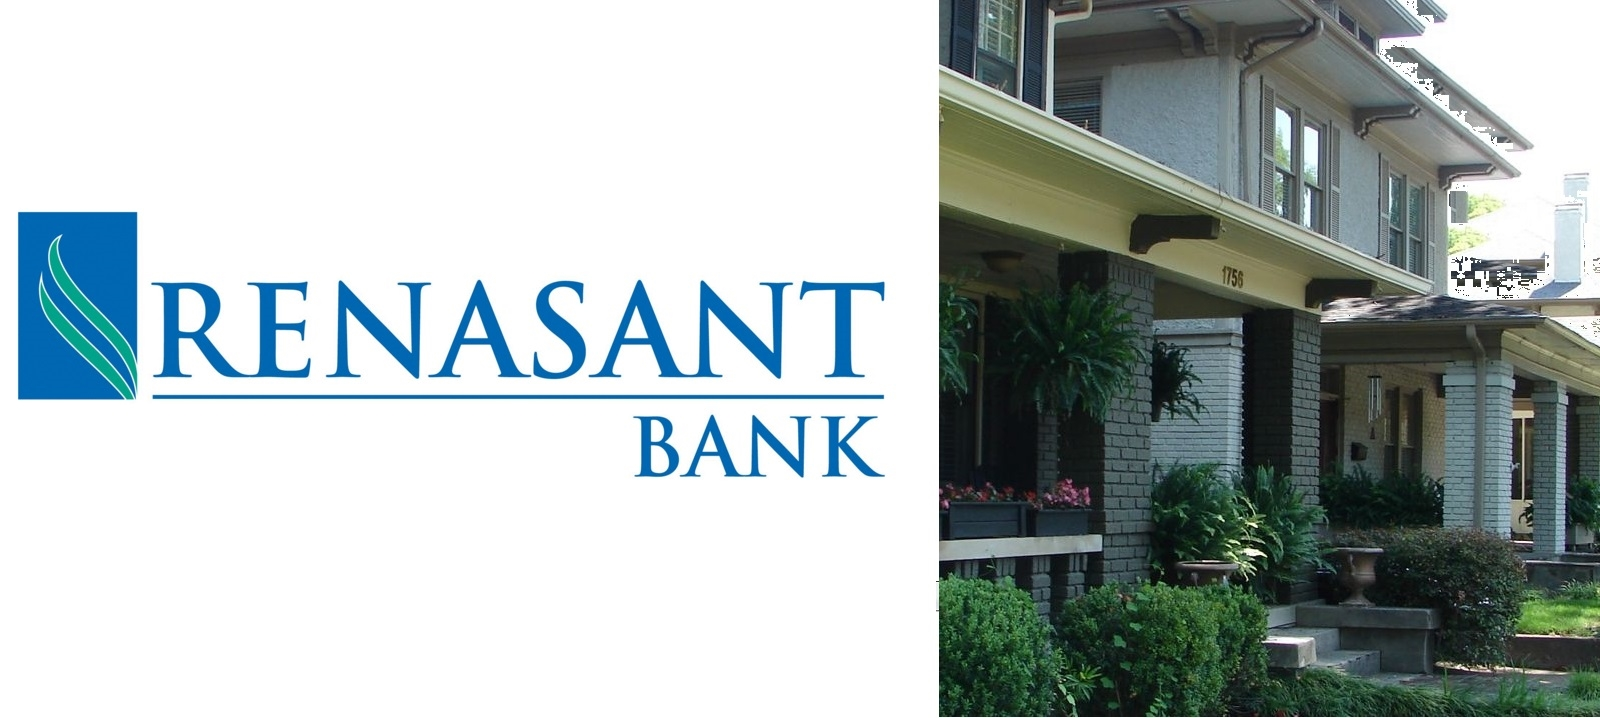 Thank you, Renasant Bank!